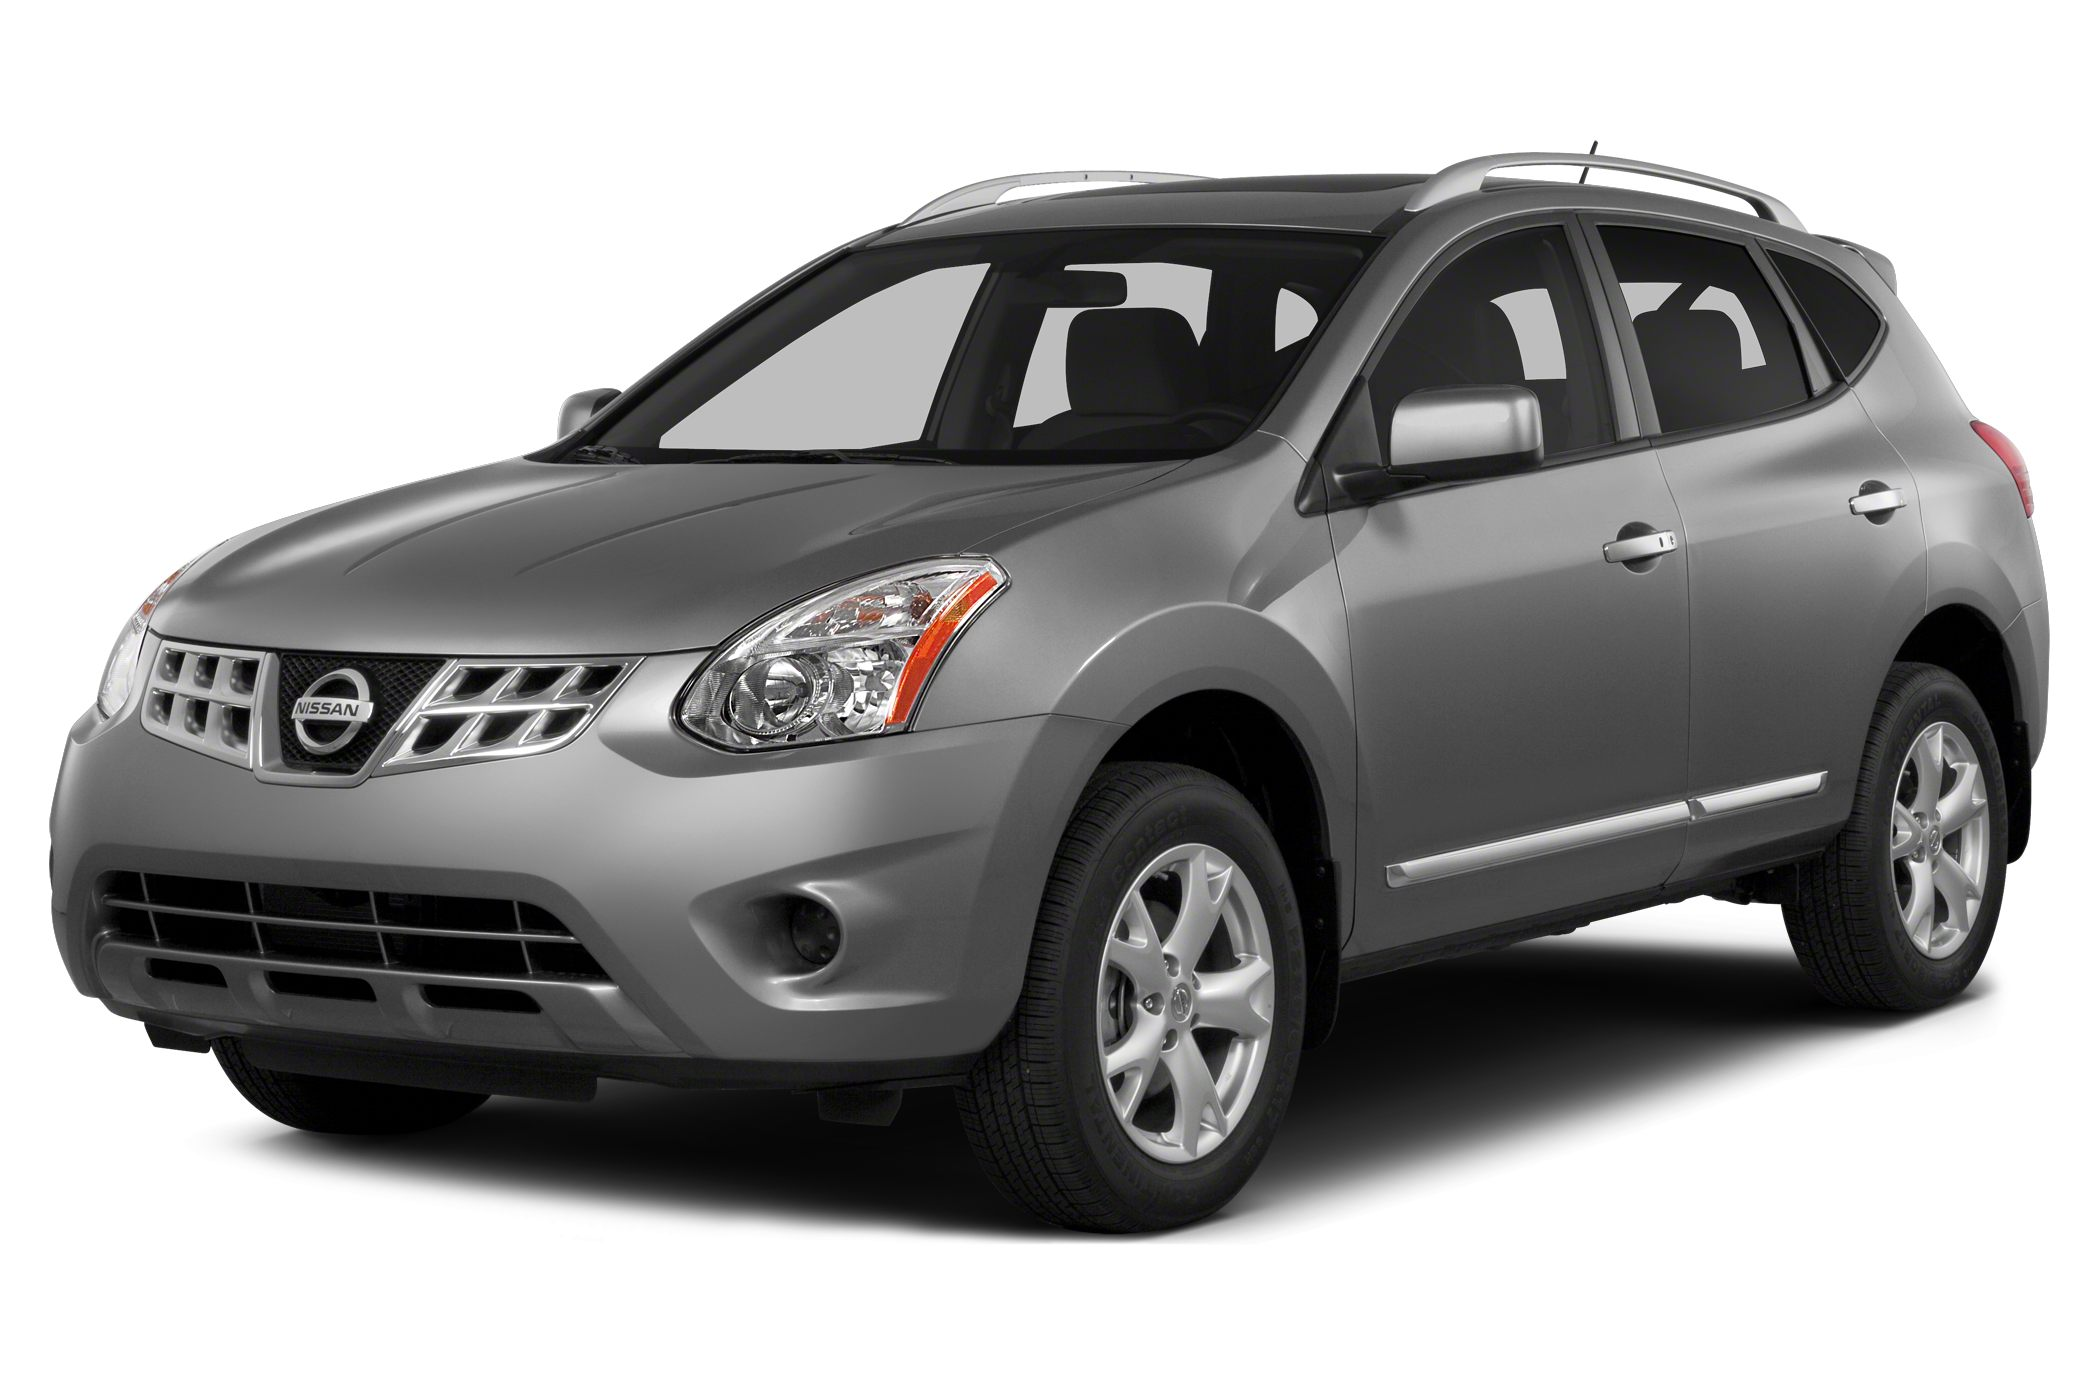 2014 Nissan Rogue Select S SUV for sale in Augusta for $19,995 with 5,178 miles